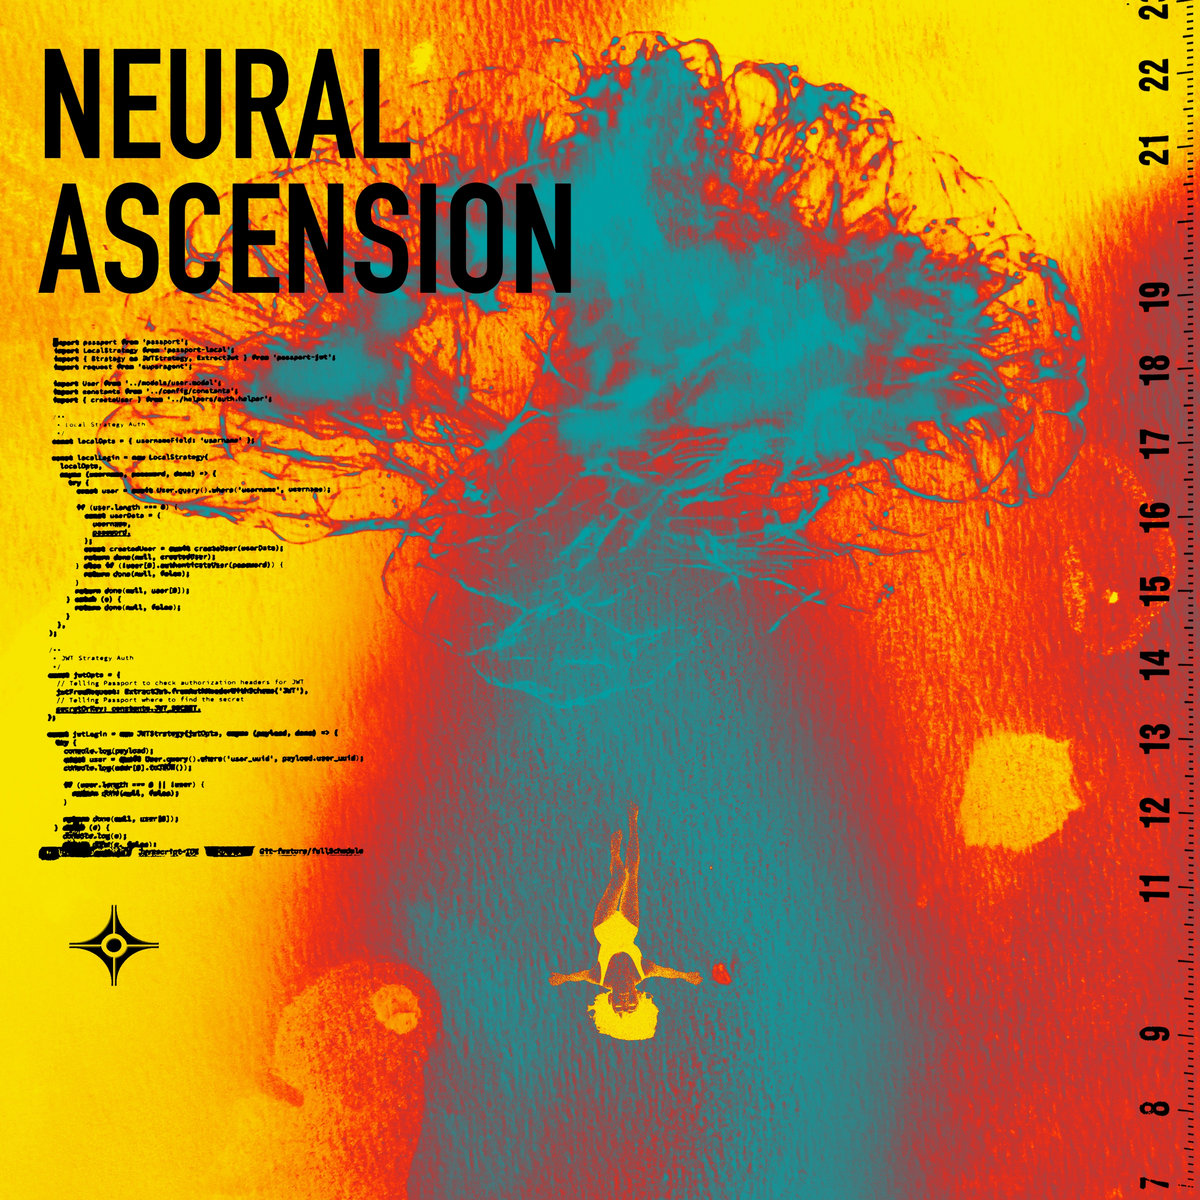 Neural Ascension by Icons of Industry